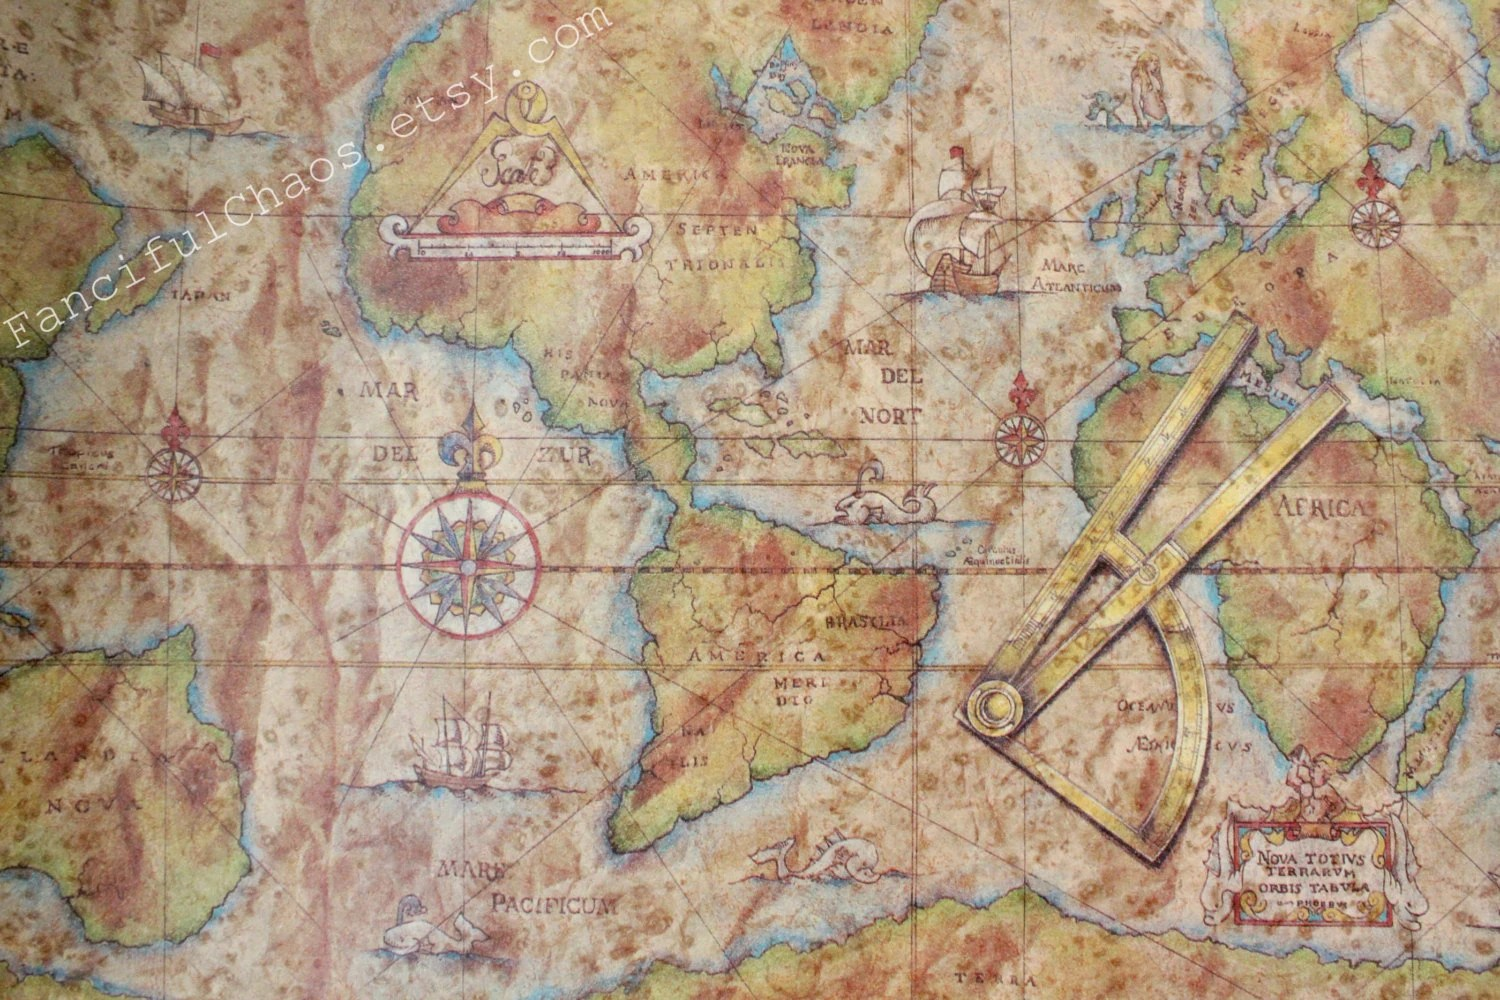 Map wrapping paper   Etsy Old World Map Wrapping Paper 2 5X10 ft   Masculine Gifts  Travel   Scrapbooking  Crafts  Cards  Father s Day  Christmas  Gift Wrap Paper